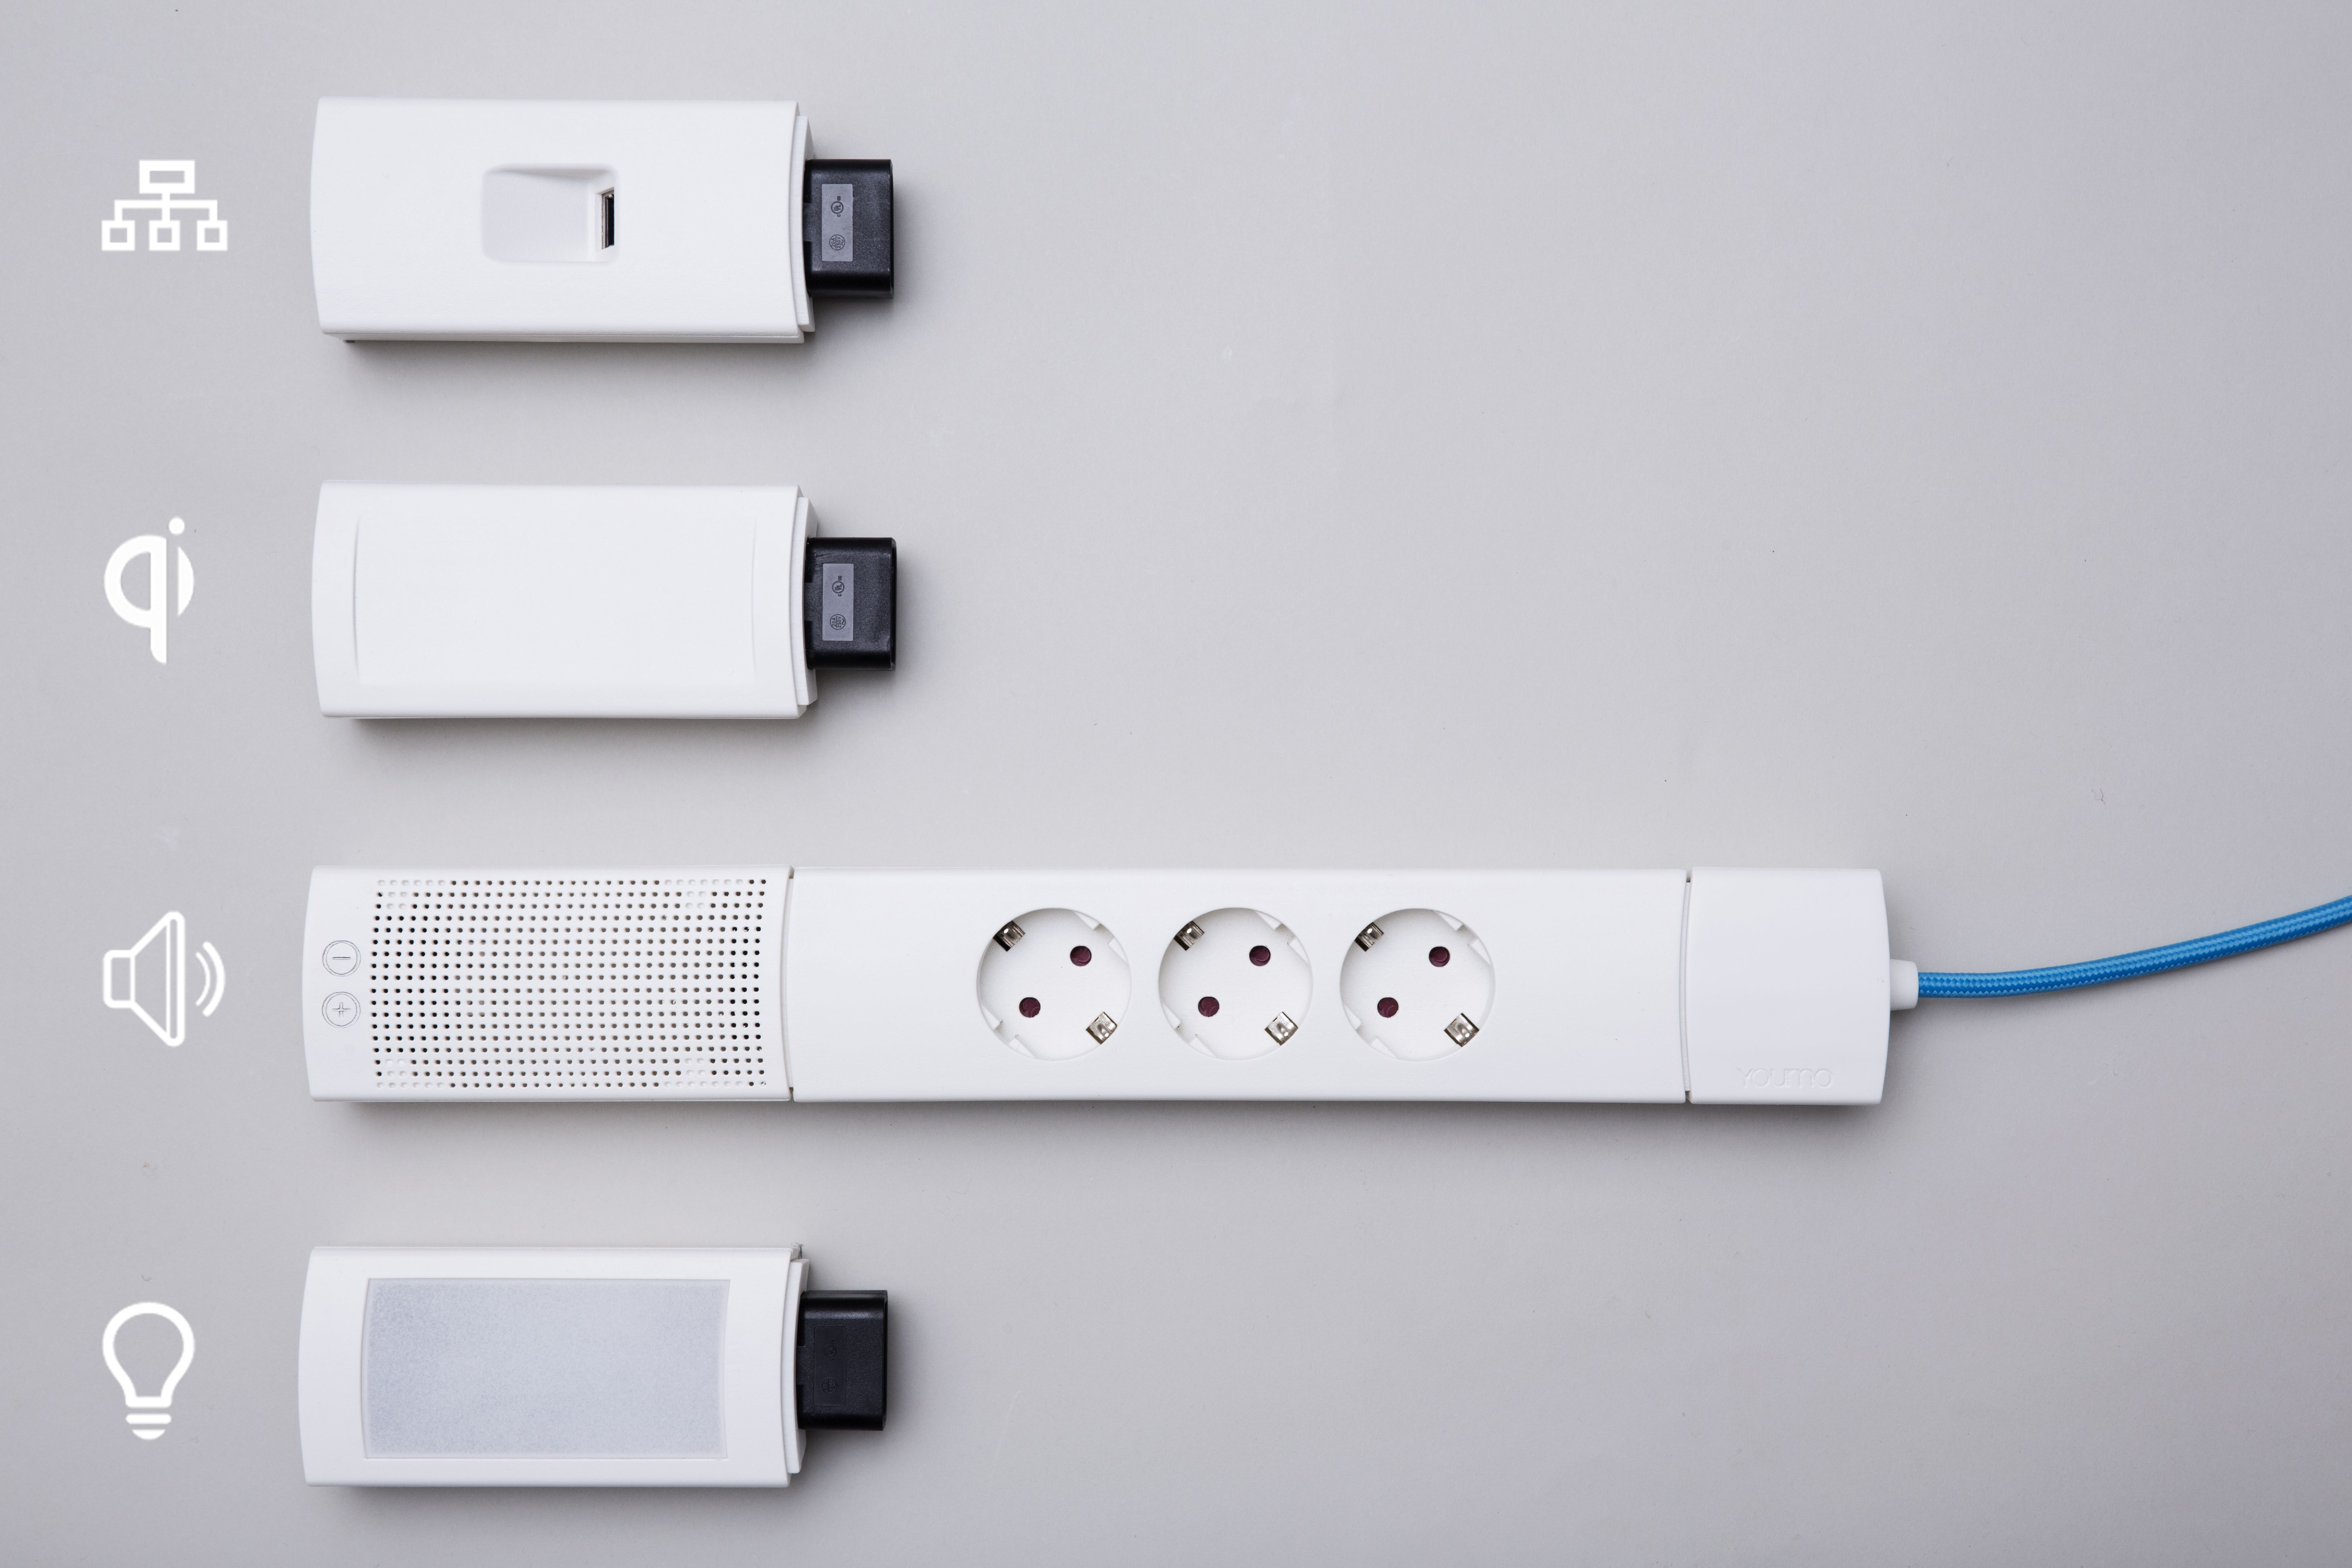 Cool Electrical Outlets A Power Strip That Multi Charges In Truly New Ways